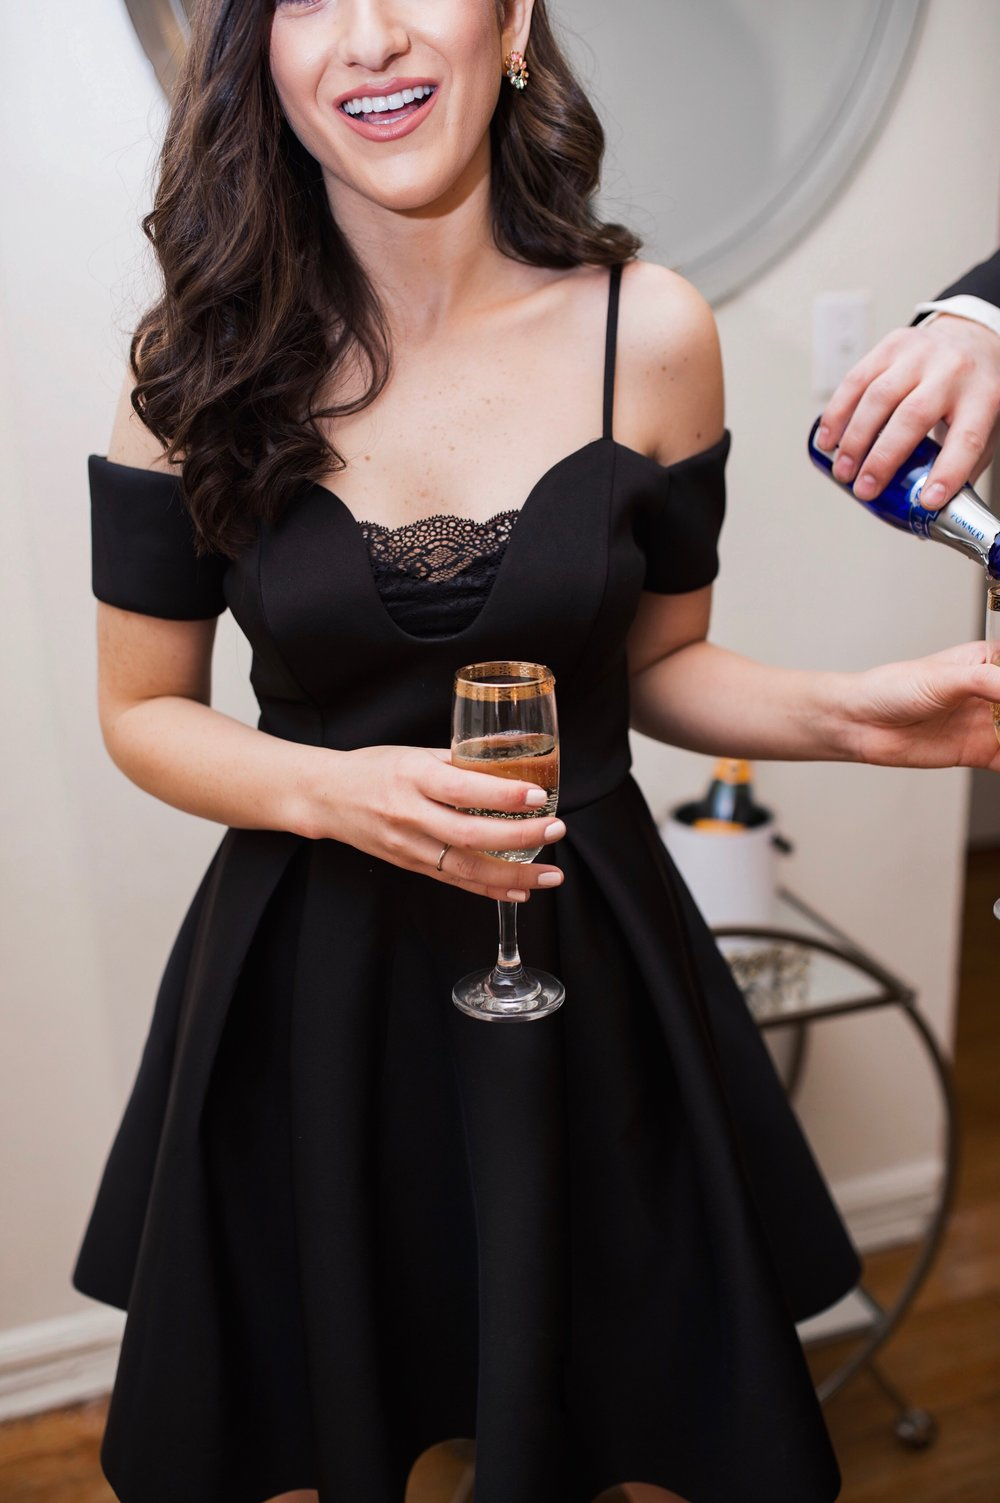 2019 Blogging Goals Happy New Year Esther Santer Fashion Blog NYC Street Style Blogger Outfit OOTD Trendy Shopping Smile Husband Wife Alcohol Drinks Gold Bar Cart Relationship Goals Little Black Dress Lace Brian Atwood Holiday Heels  Rainbow  Earrings.jpg